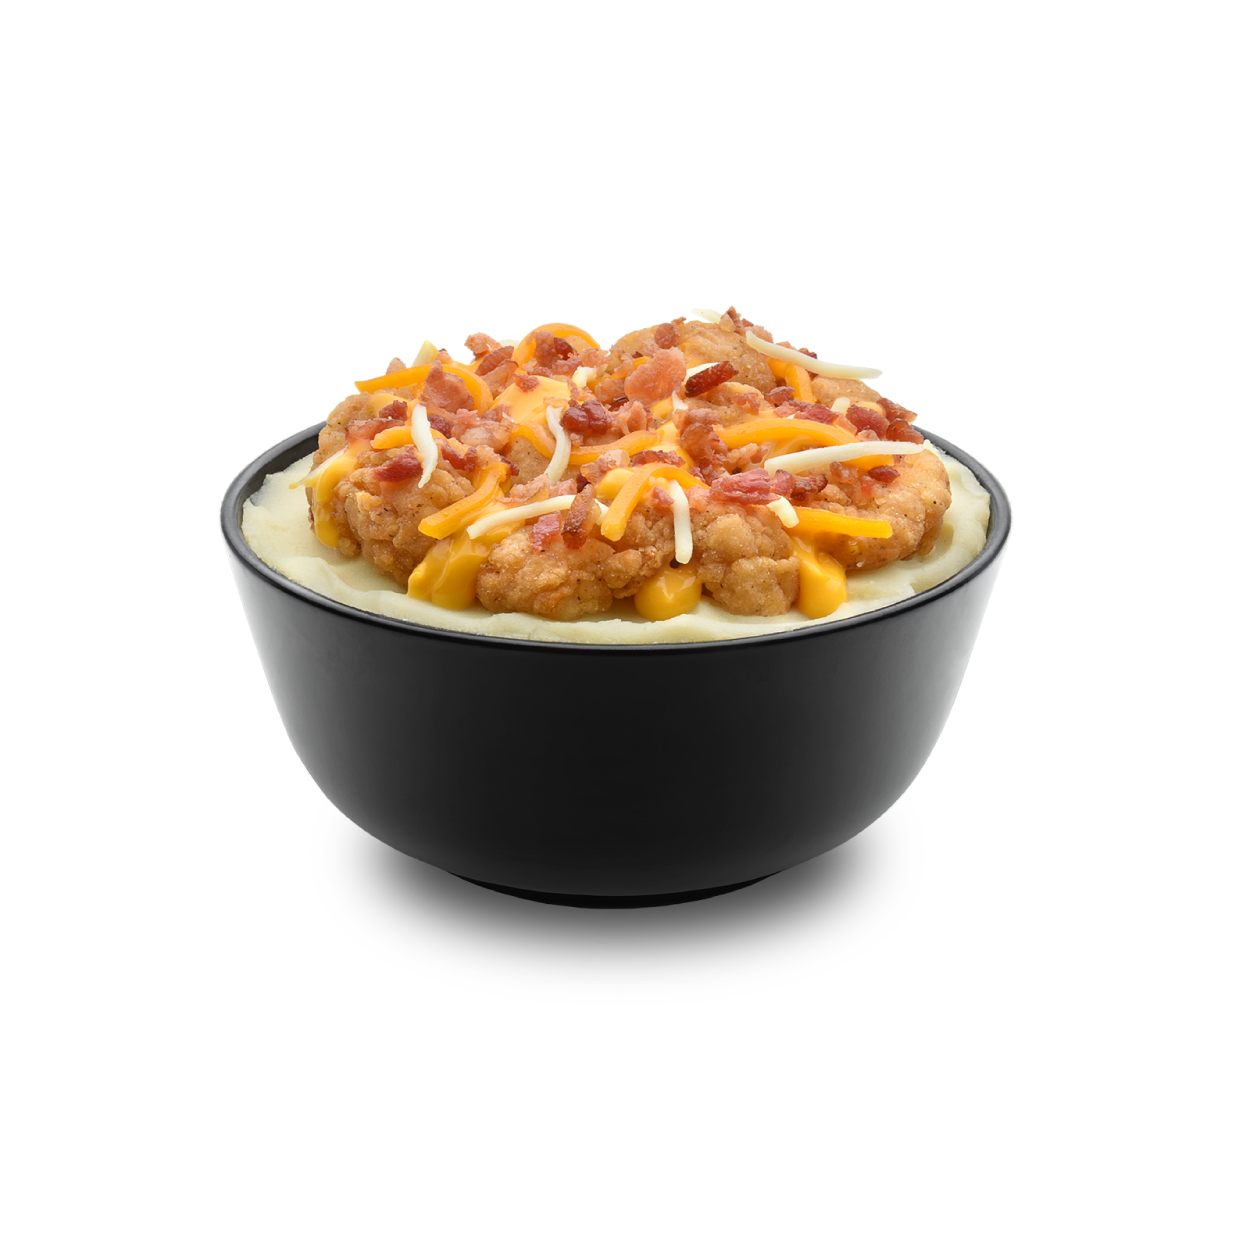 Bacon and Cheese Famous Bowl